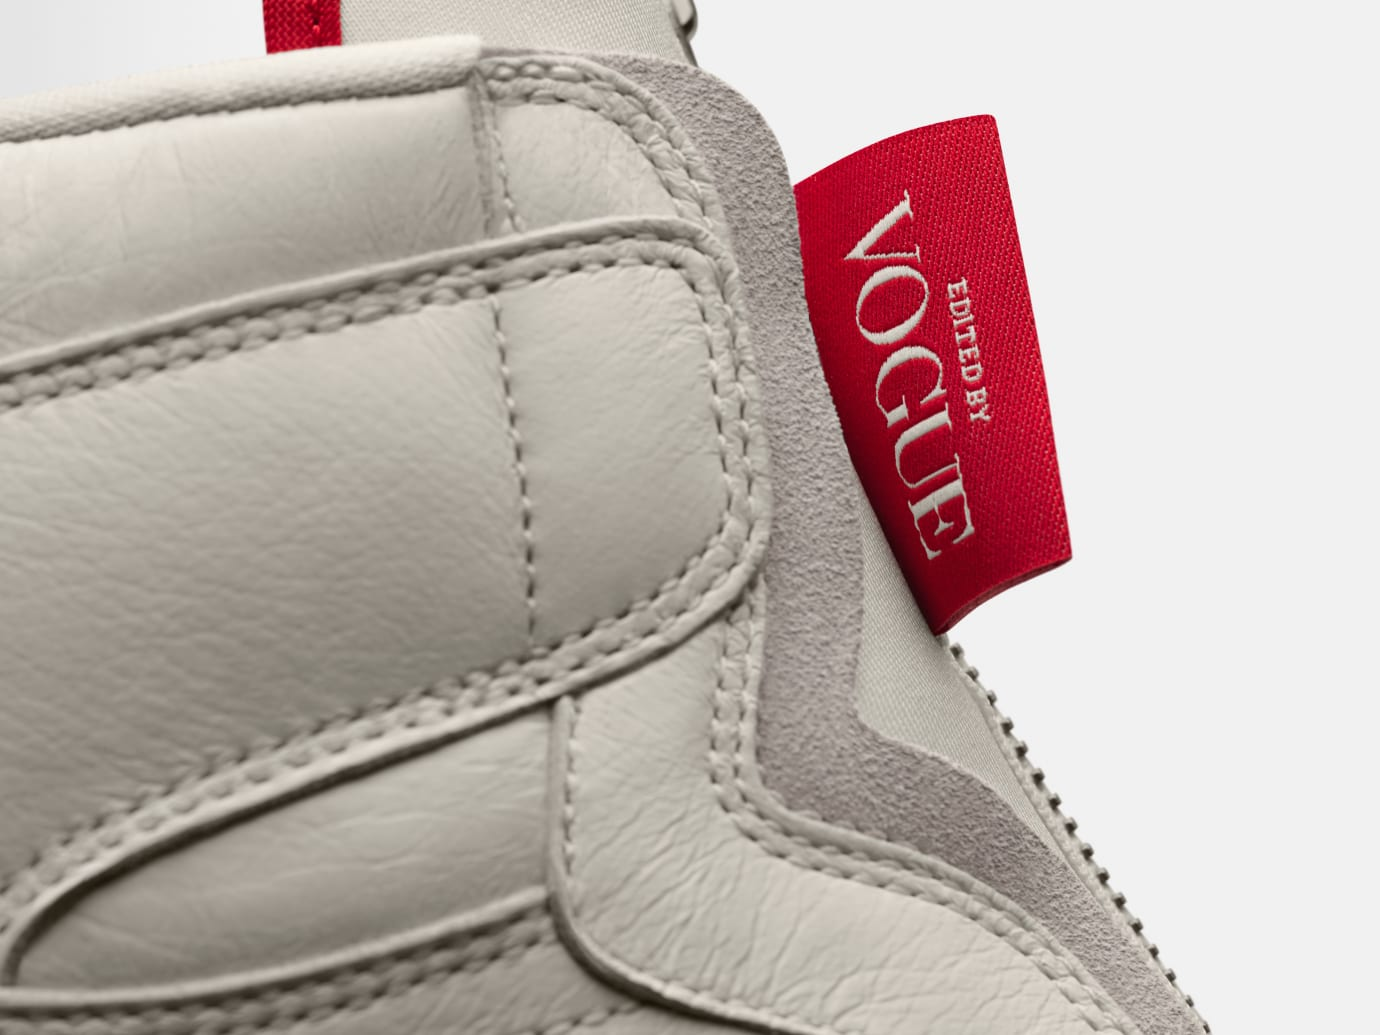 Vogue x Air Jordan 1 Zip AWOK 'Sail' (Detail)